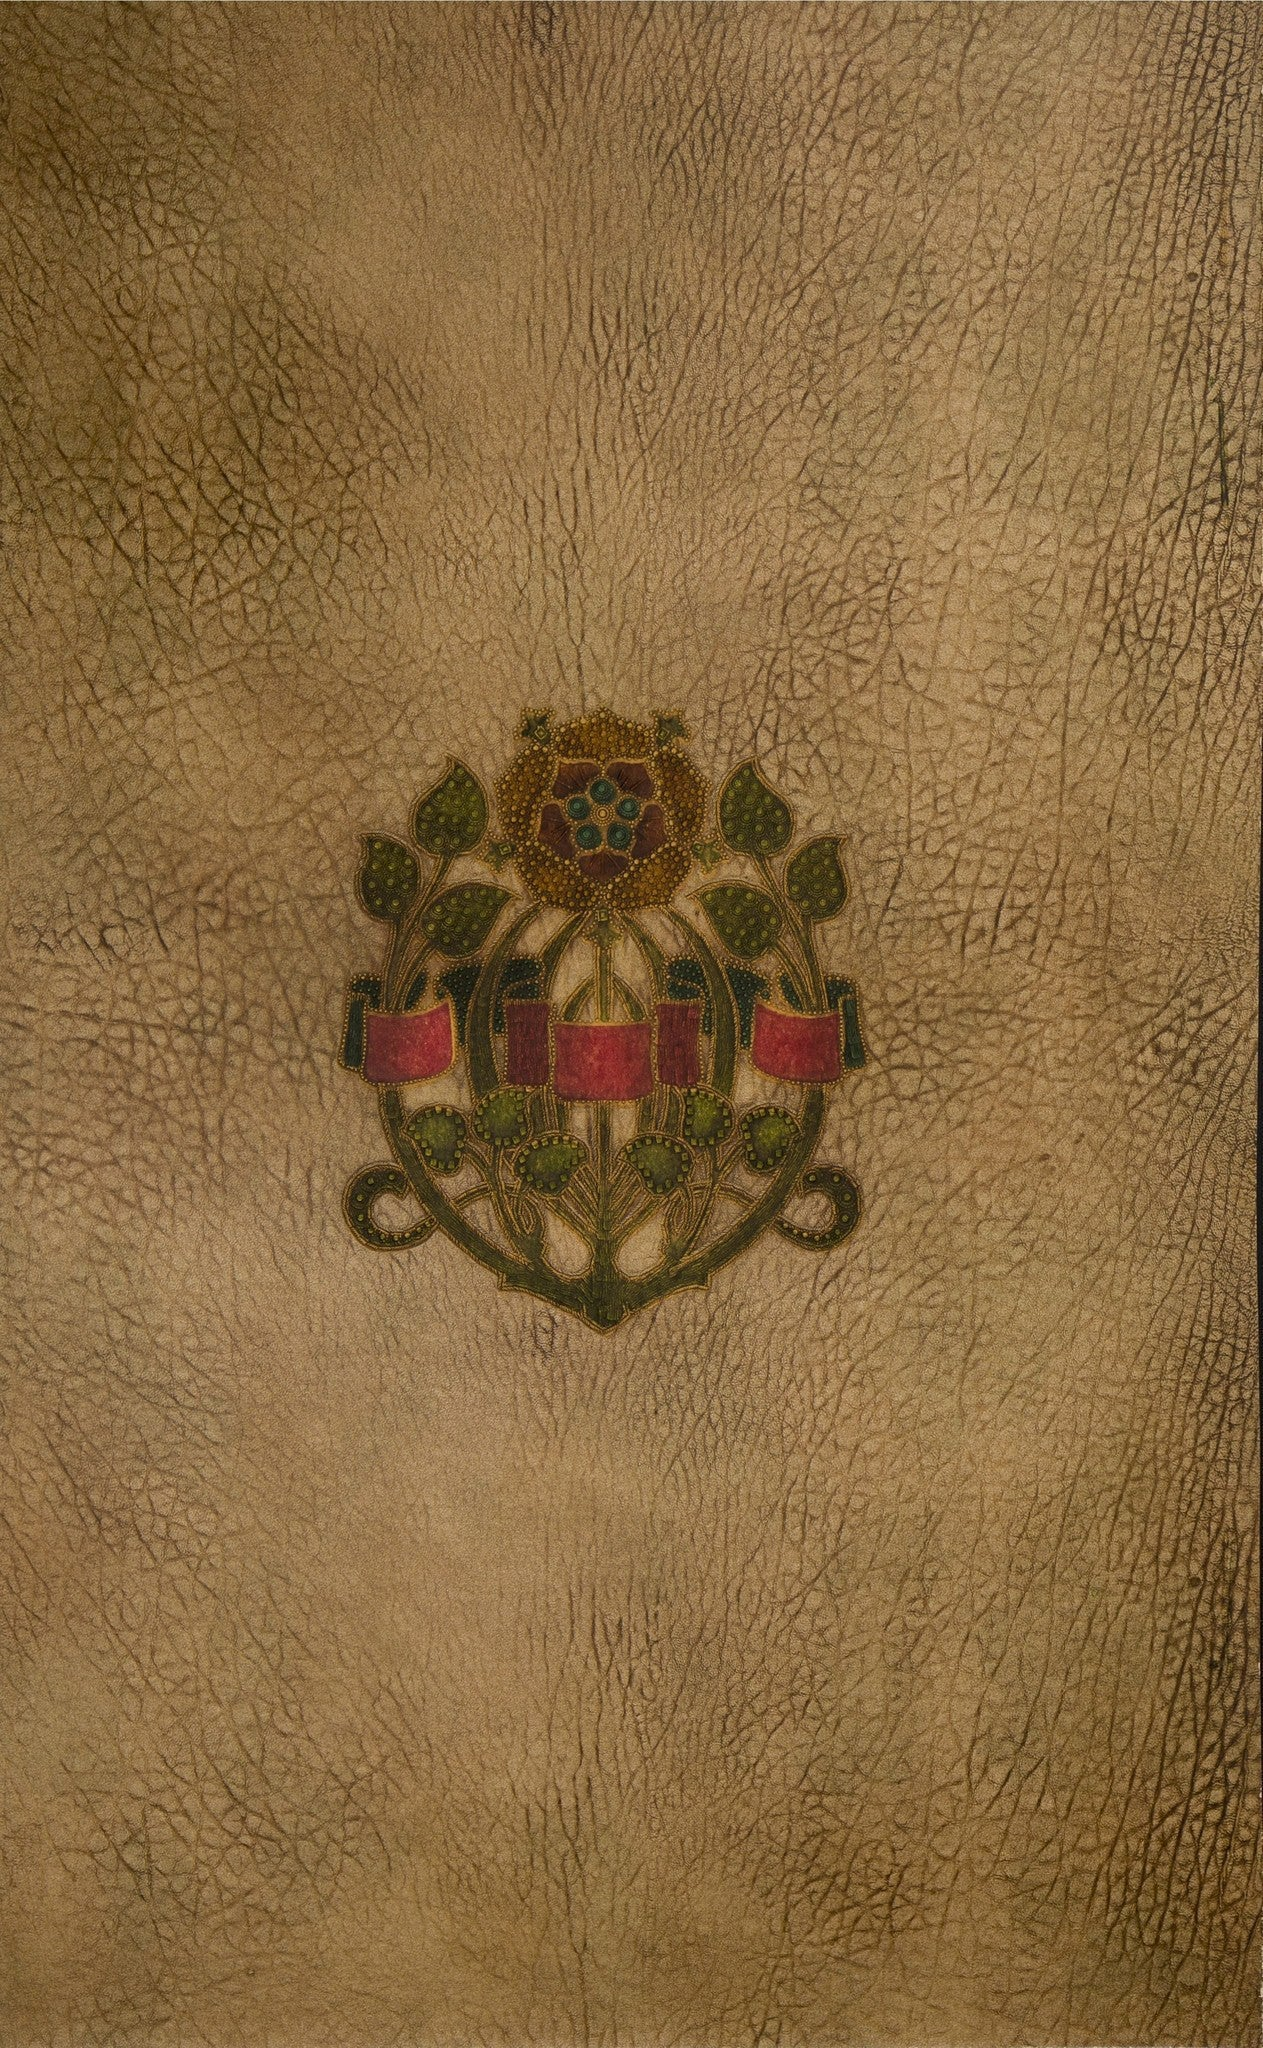 Embossed Arts & Crafts Rose on Leather - Antique Wallpaper Remnant